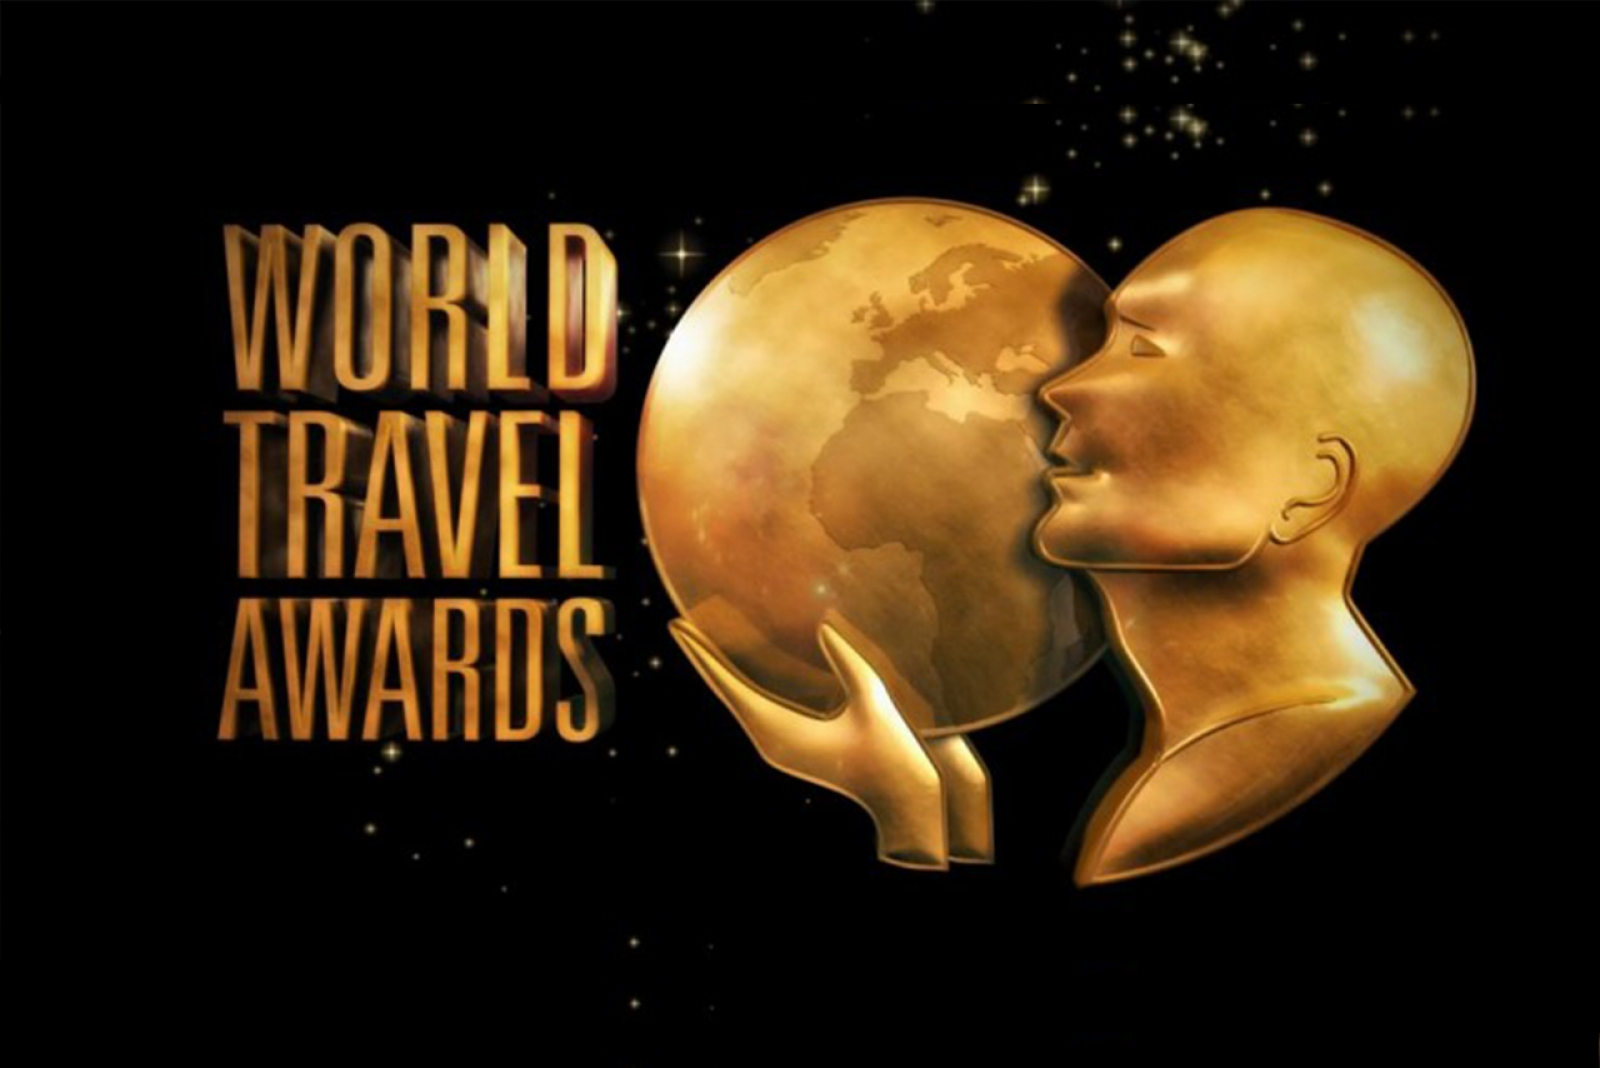 Madeira Gagne le Meilleur Prix de la Destination Insulaire de l'Europe attribuée par World Travels Awards